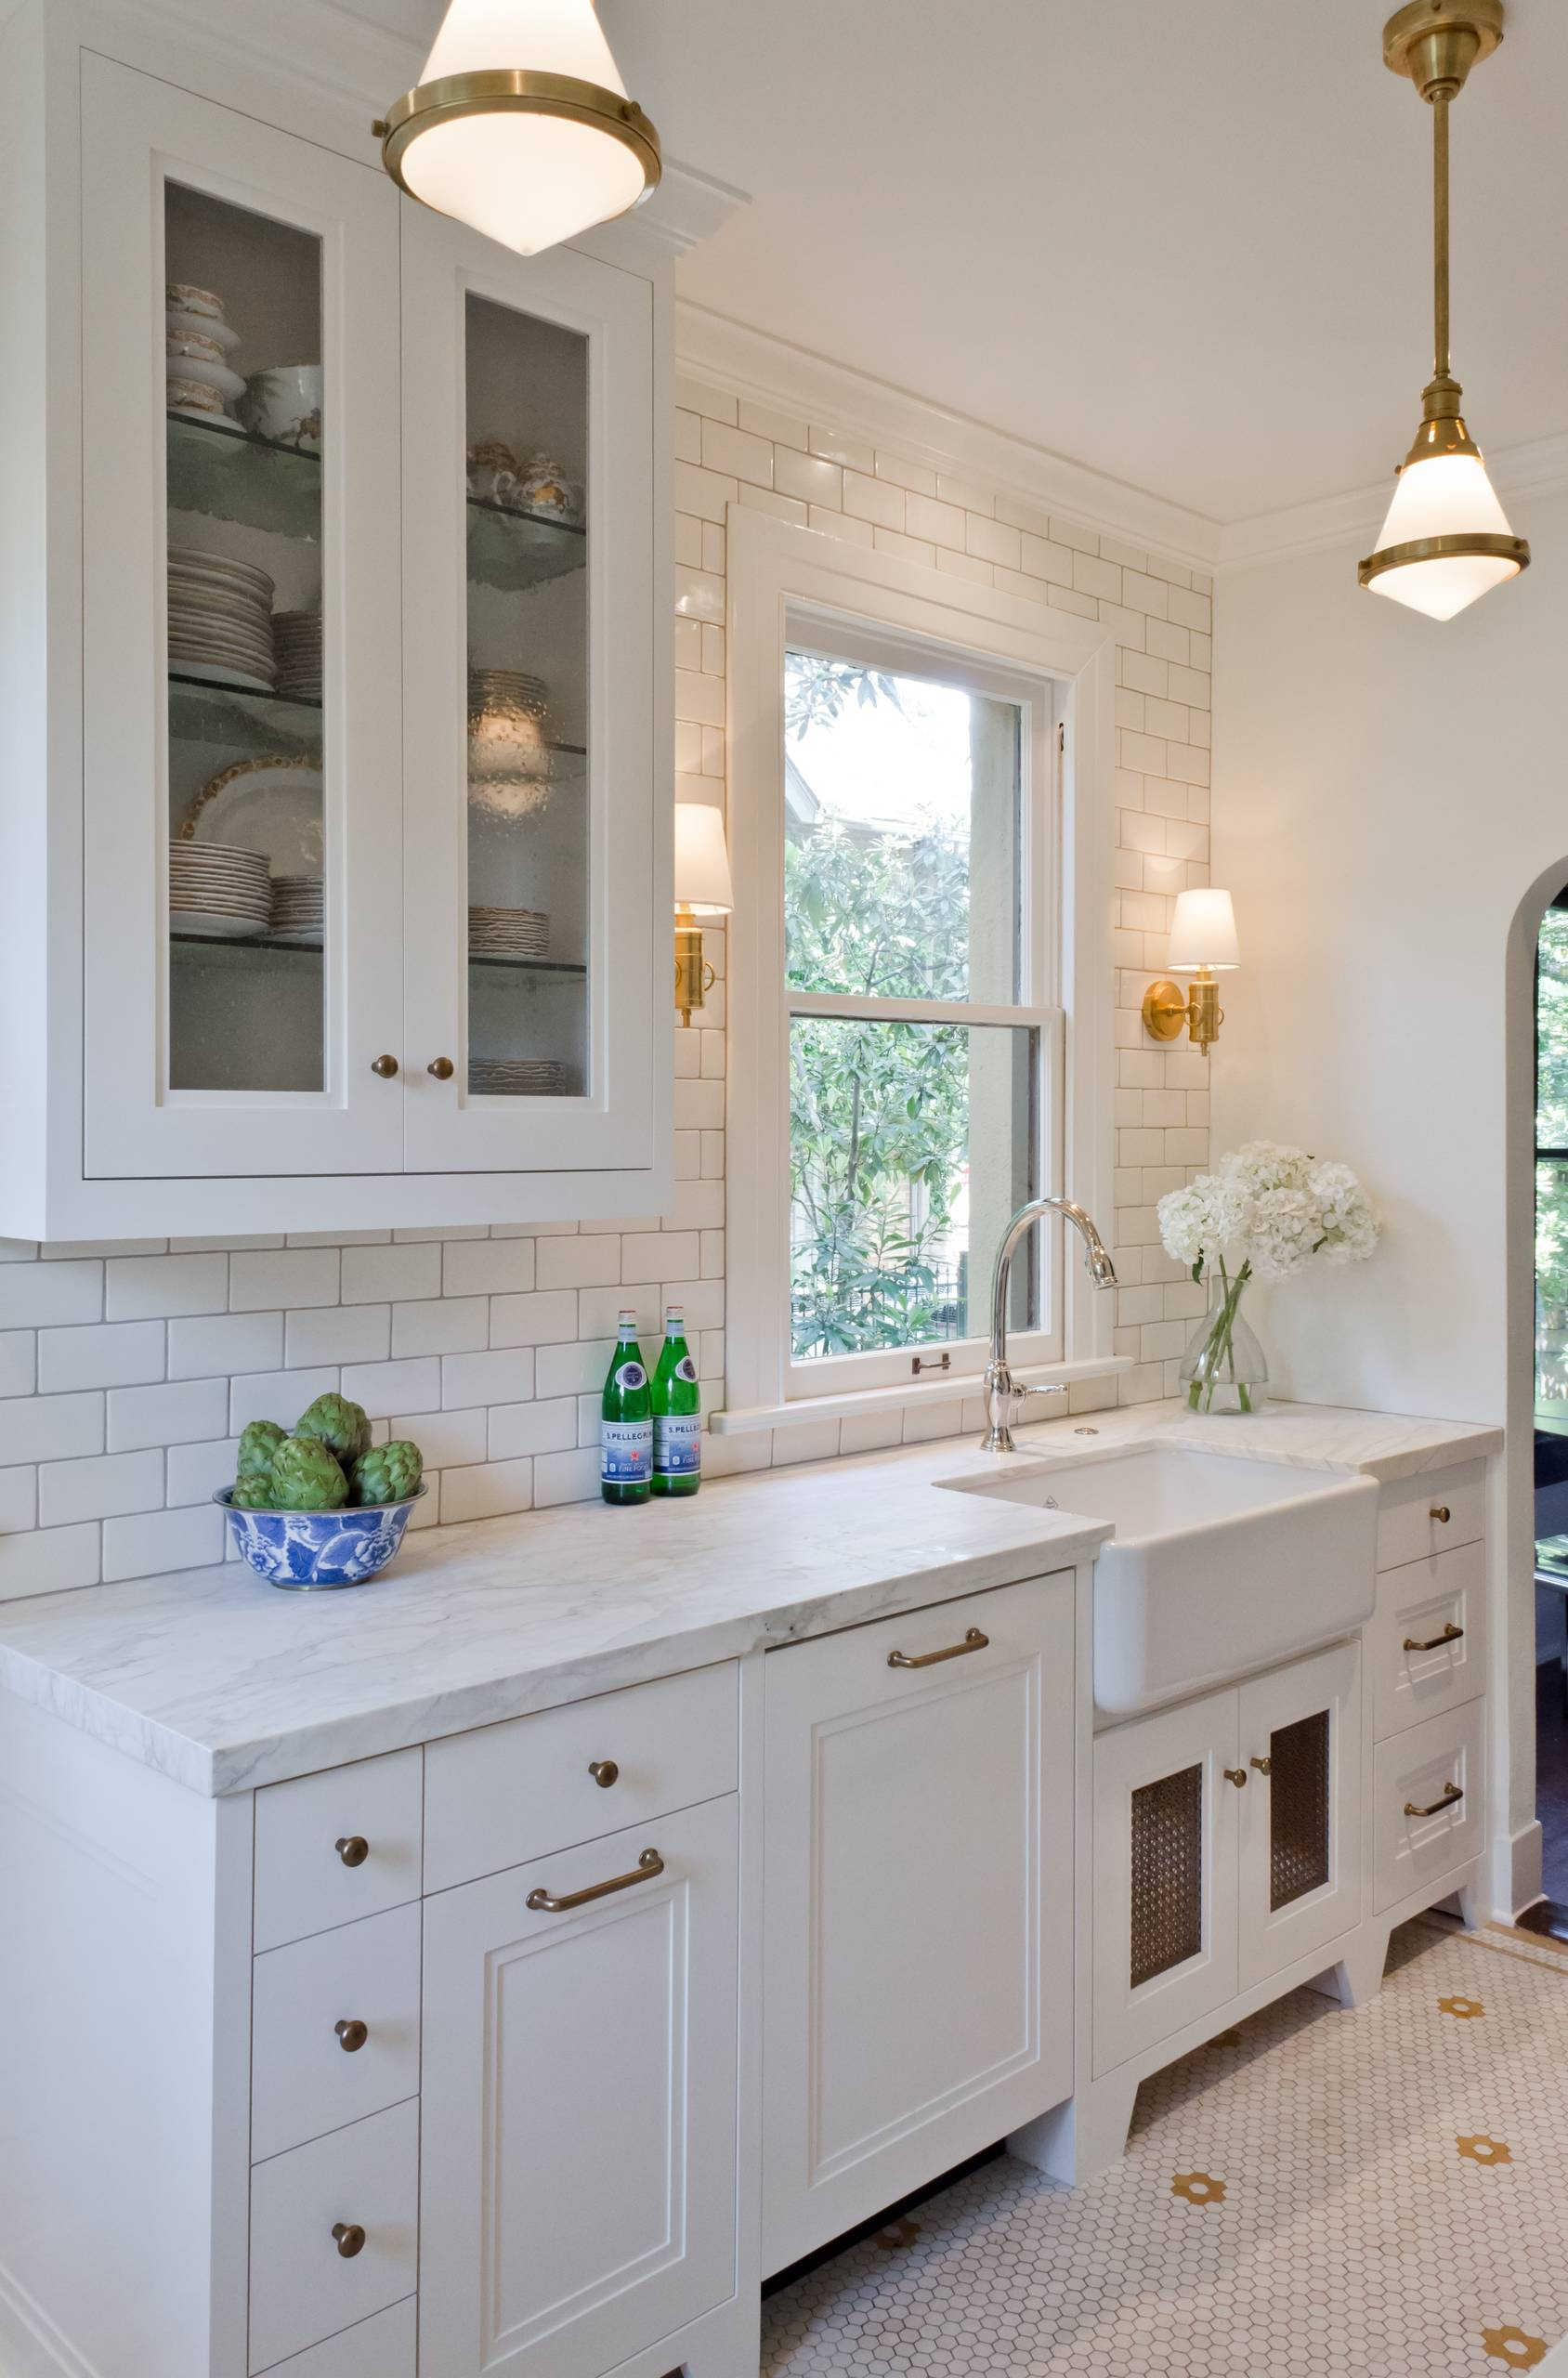 75 Beautiful Small Kitchen With Subway Tile Backsplash Pictures Ideas April 2021 Houzz